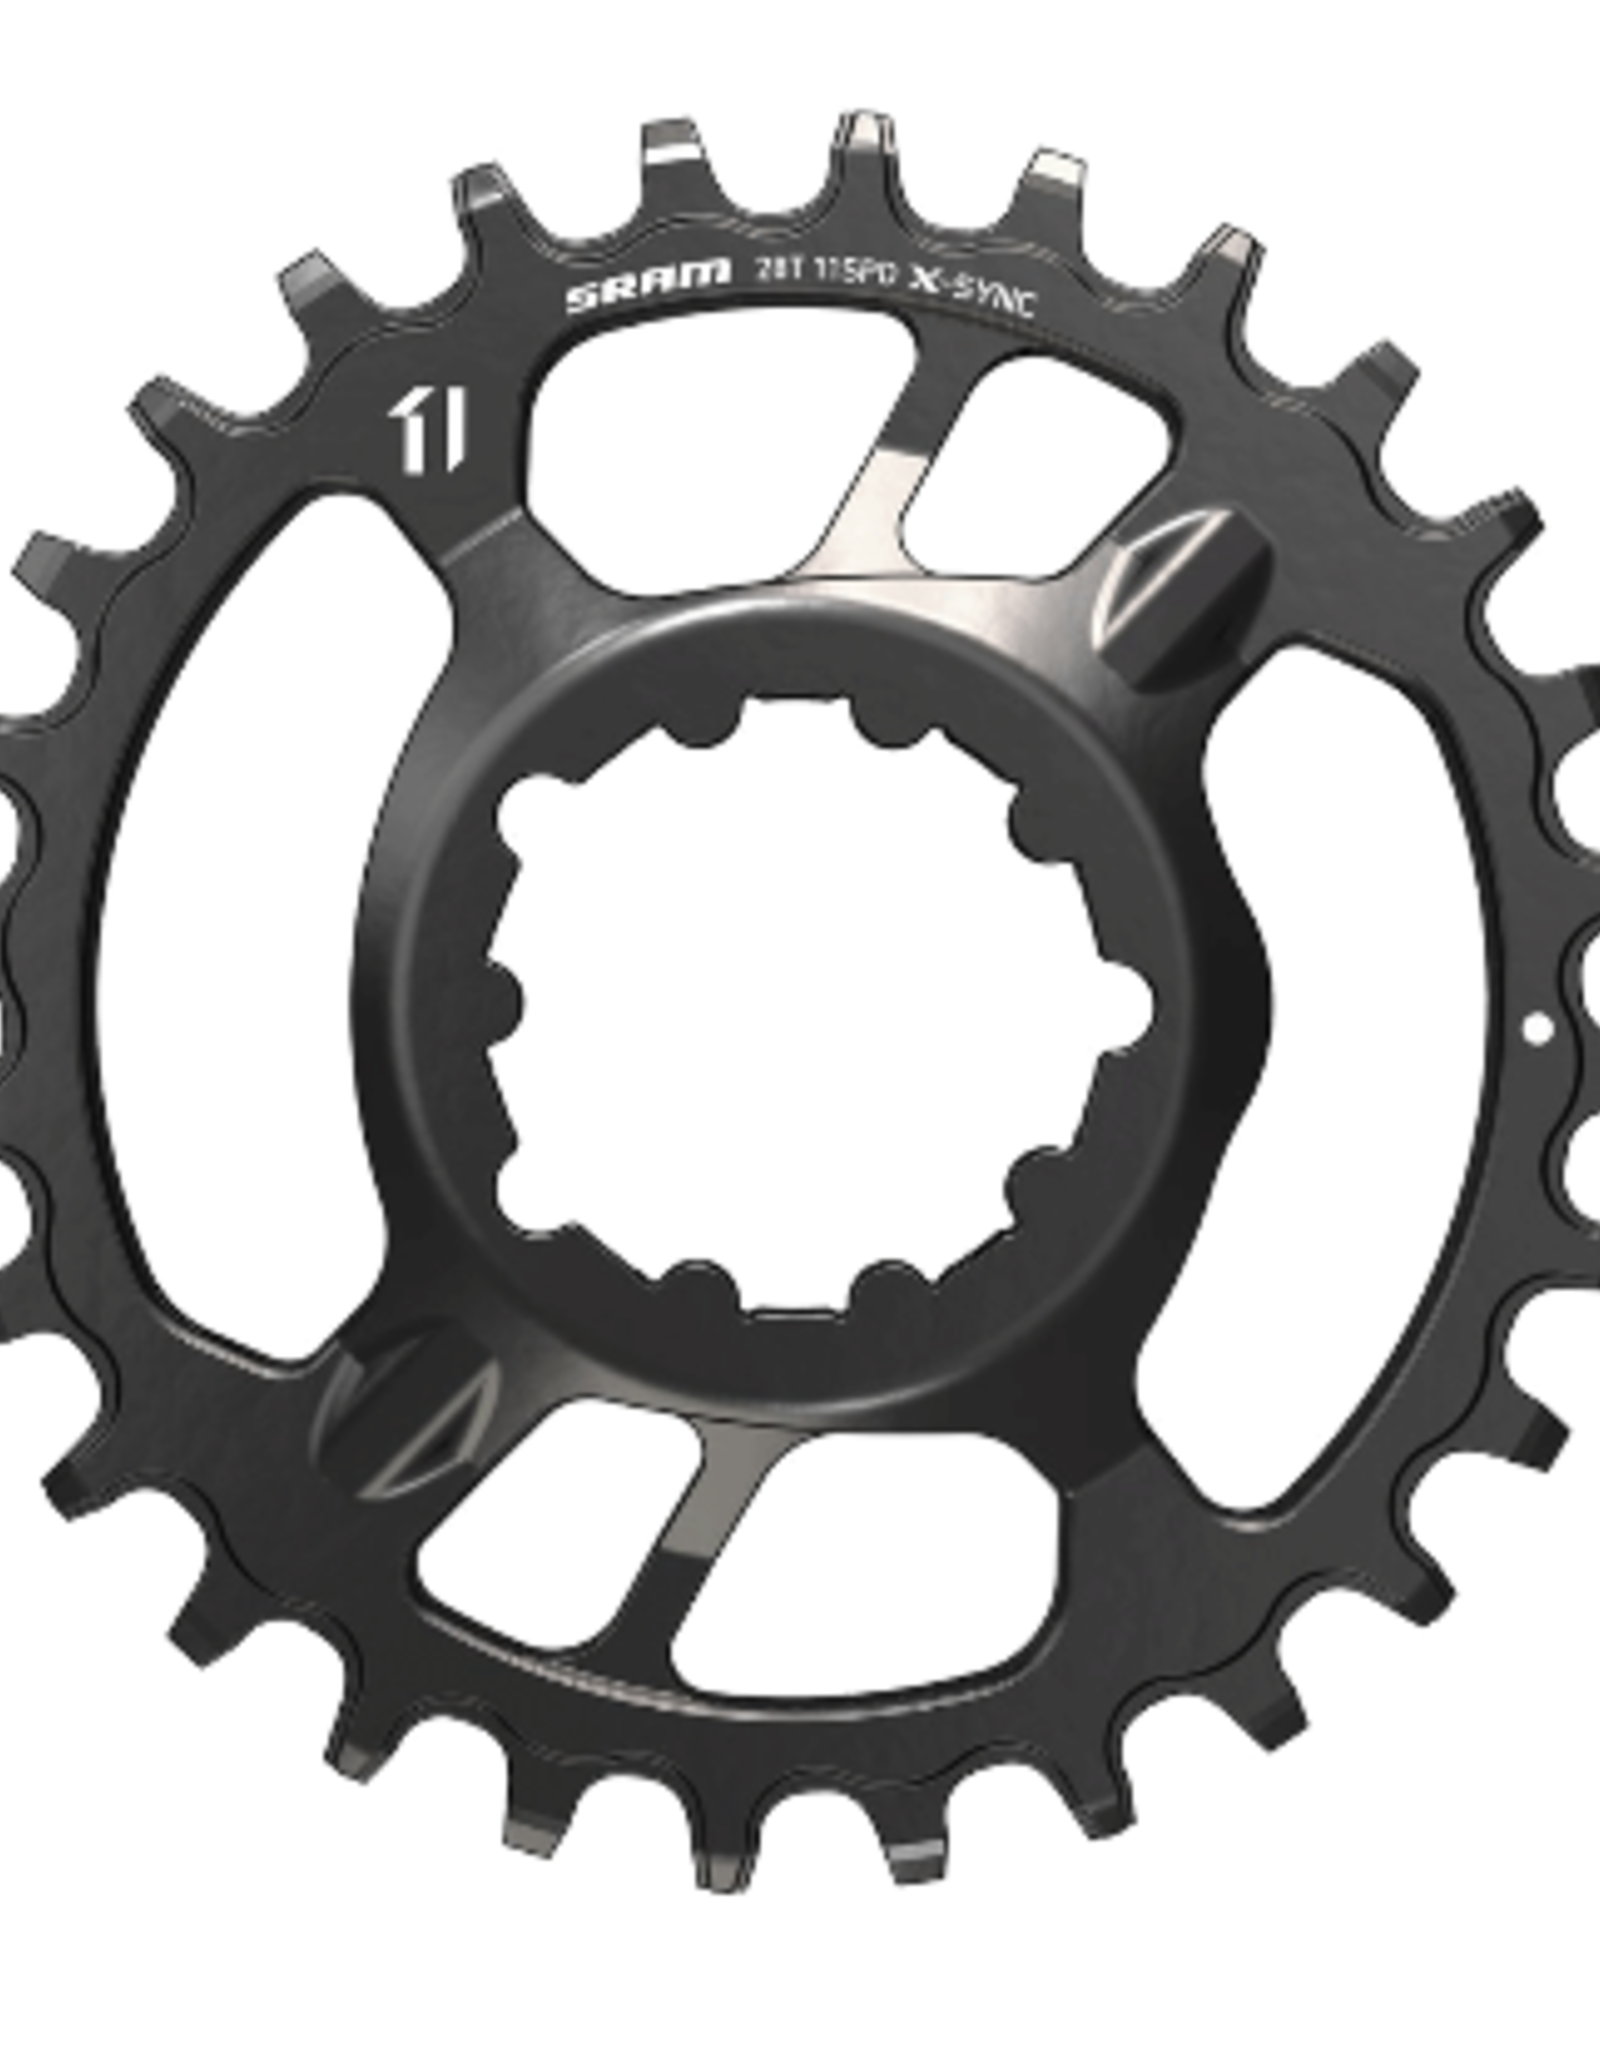 srAM SRAM chain ring X-Sync 2 steel direct mount 6MM offset Eagle 34t